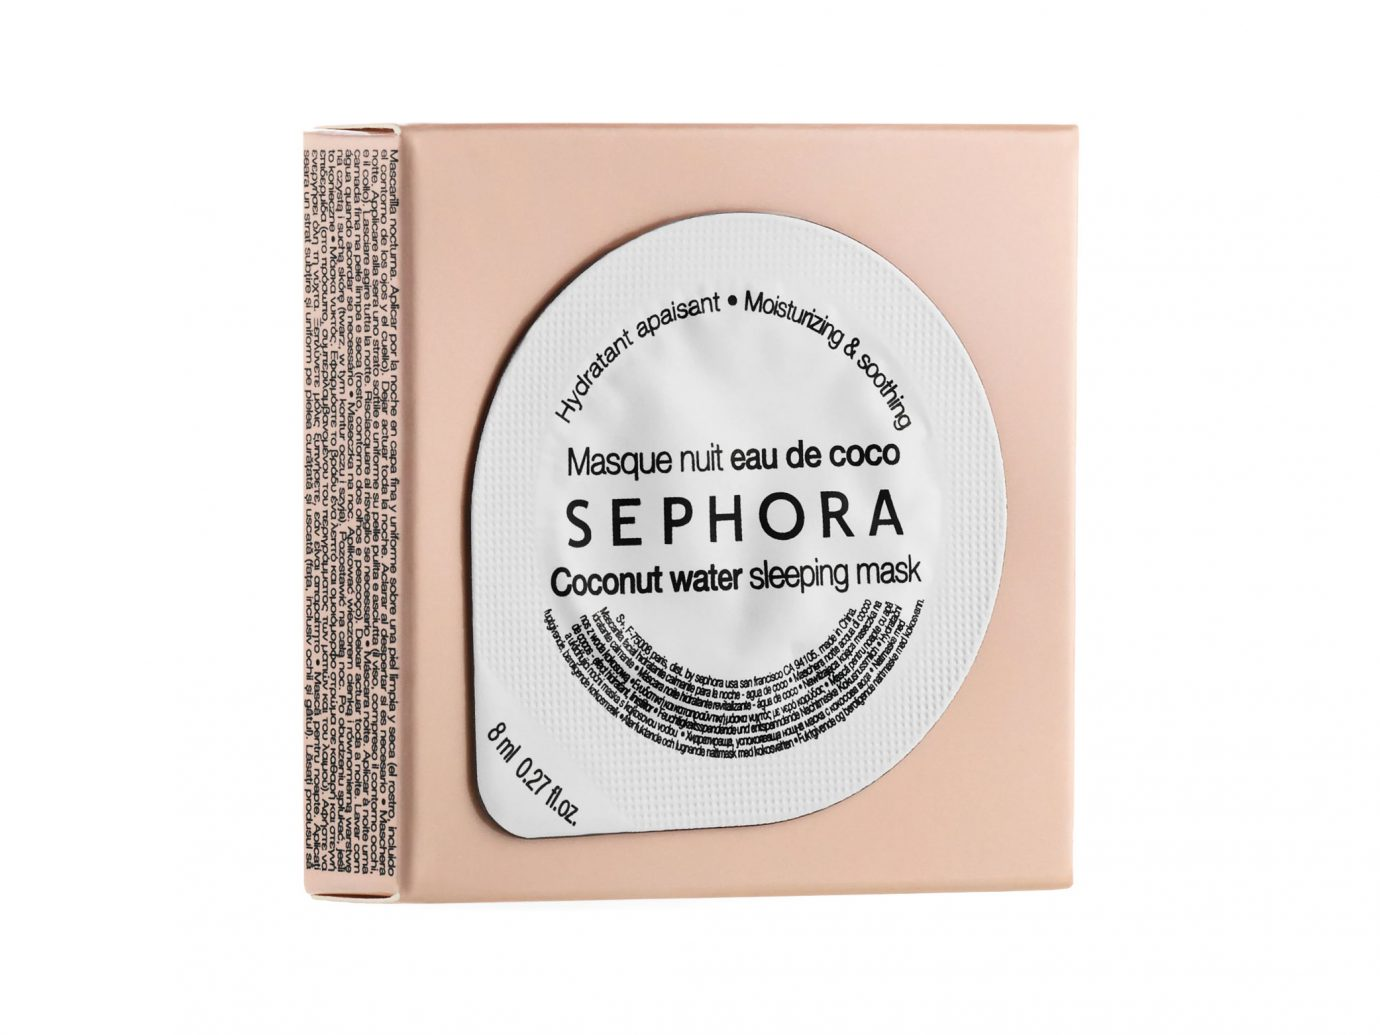 Sephora Coconut Water Sleeping Mask